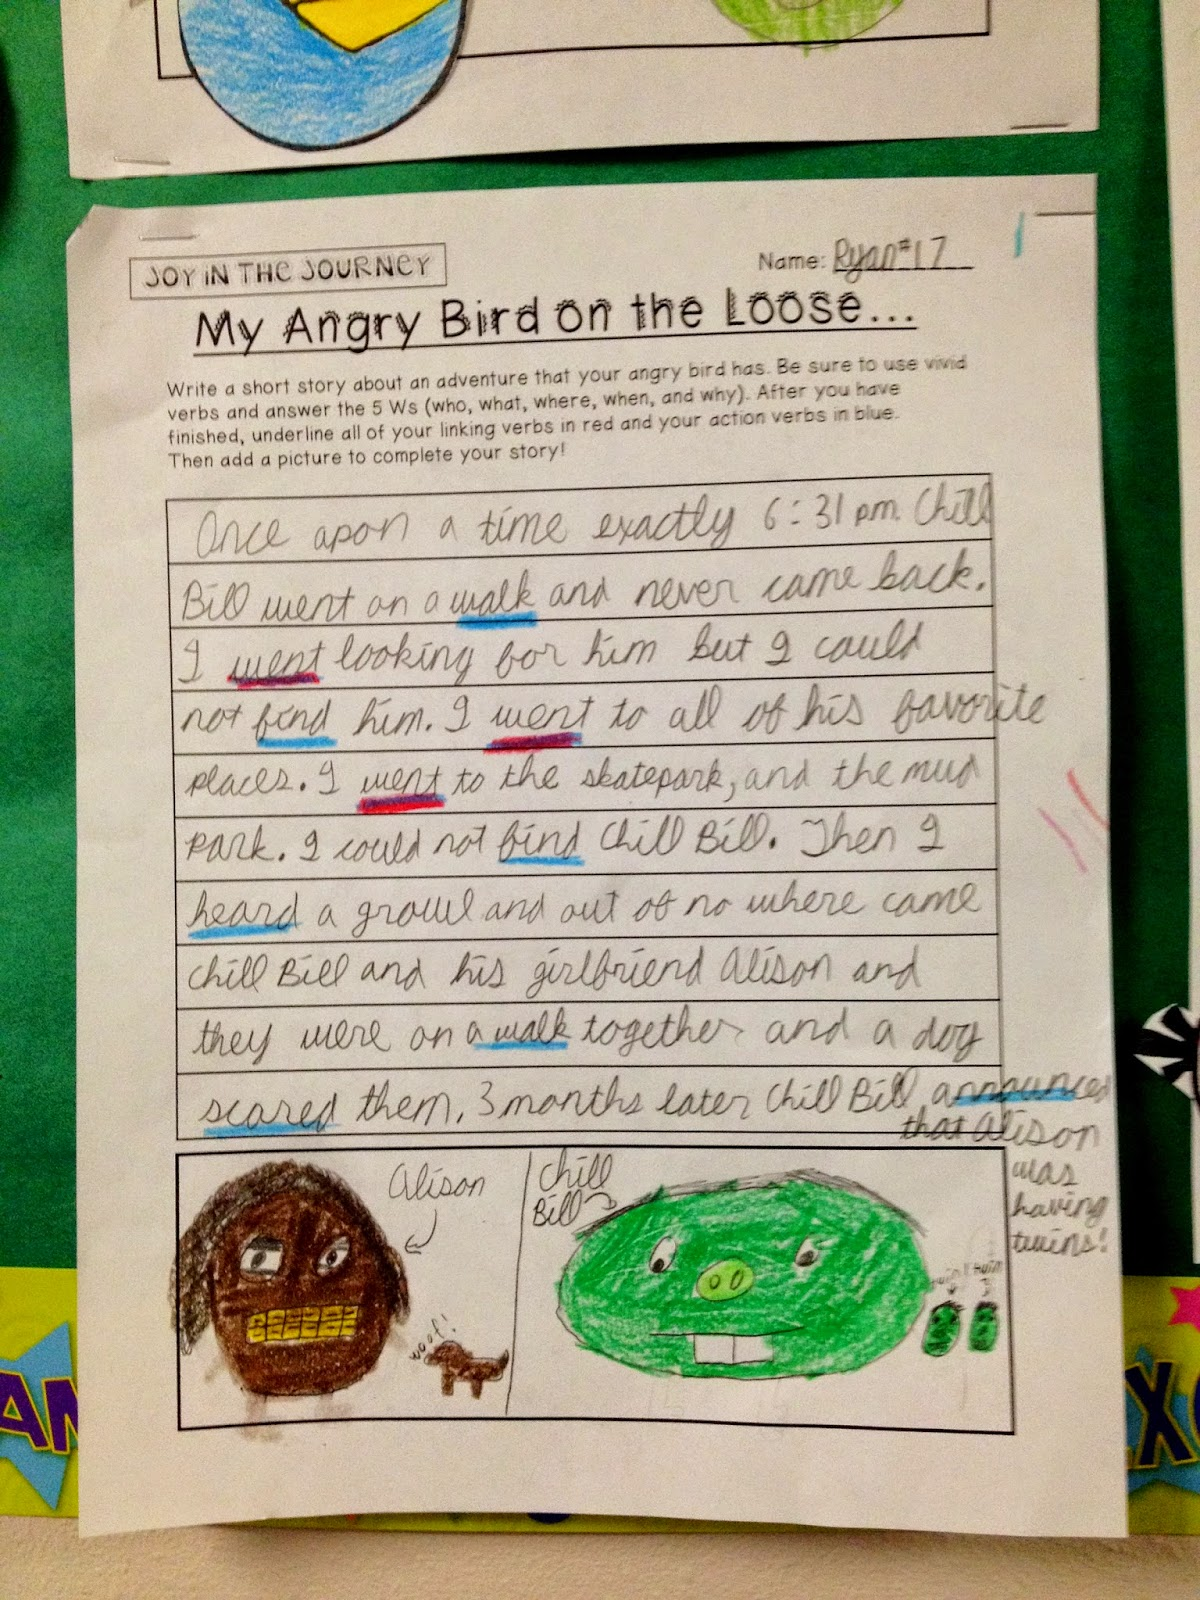 Engaging Students With Angry Verbs